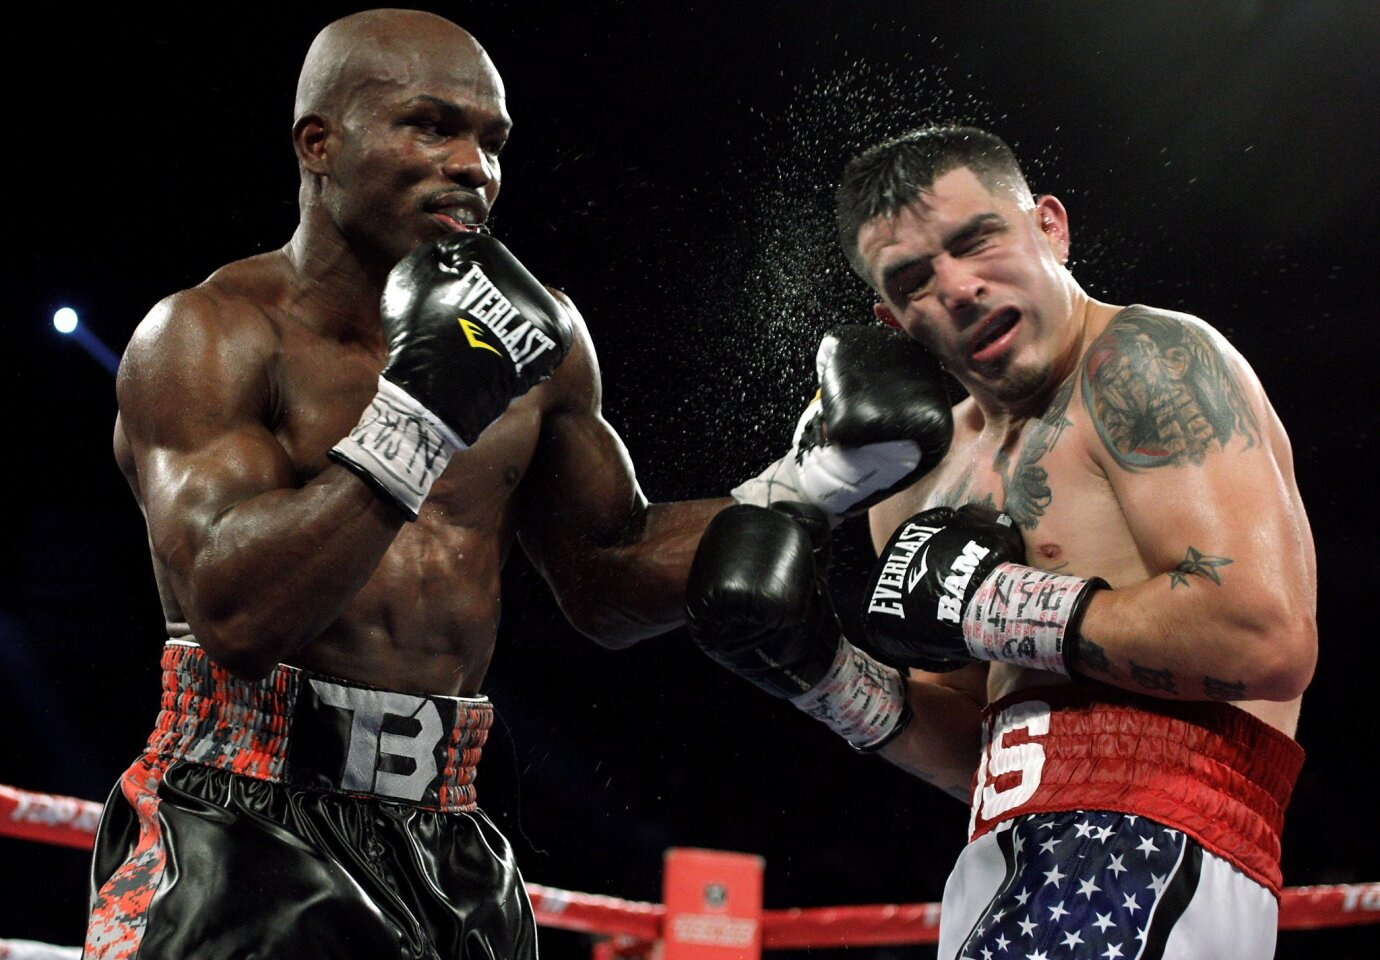 Champion Timothy Bradley (L) connects with a left against challenger Brandon Rios (R) at the Thomas & Mack Center in Las Vegas, Nevada. Bradley retained his welterweight title by technical knockout at 2:49 of the ninth round.